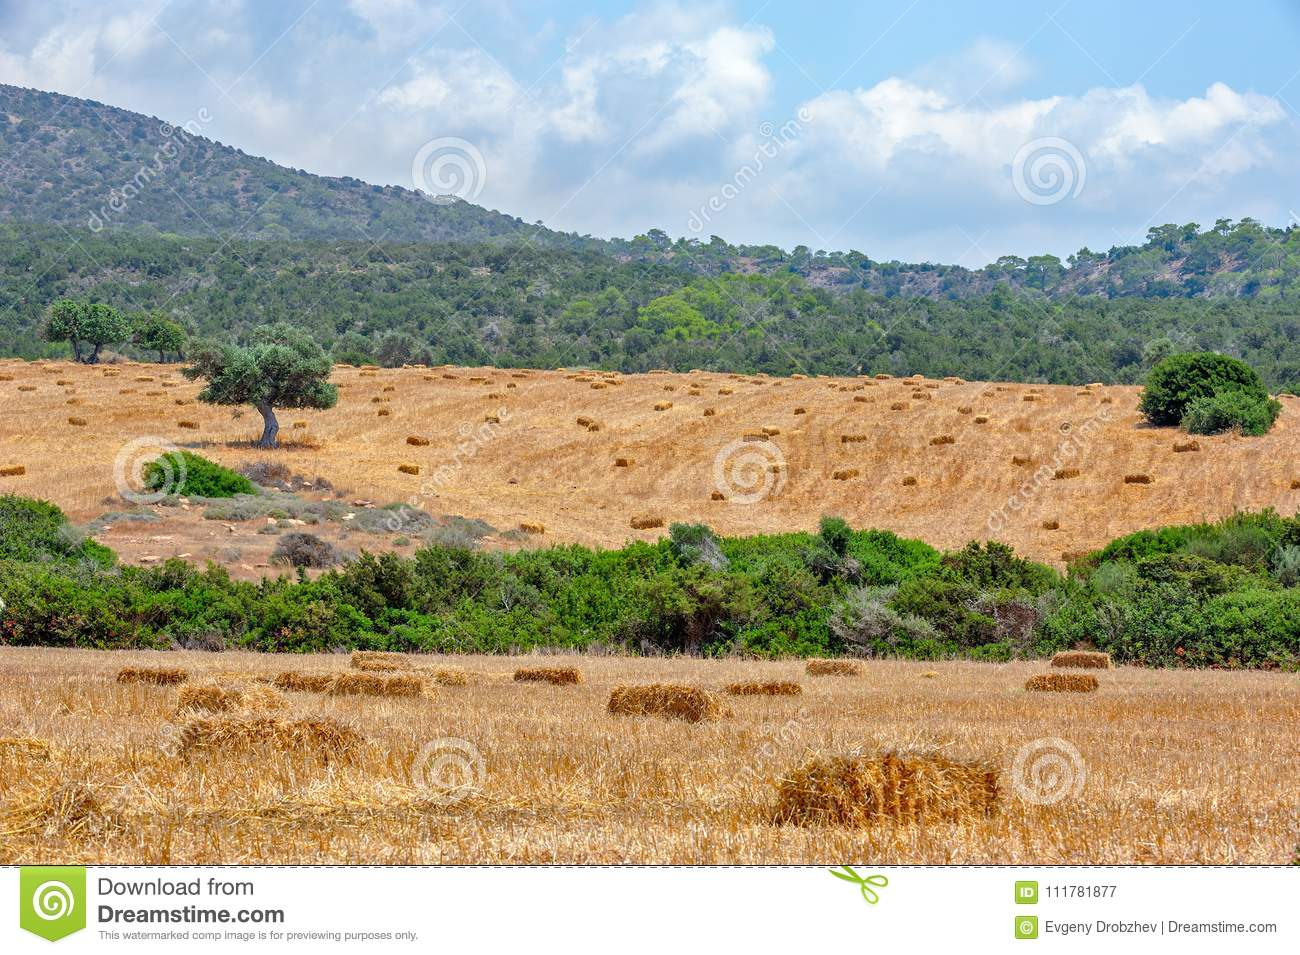 Agriculture field with straw bales